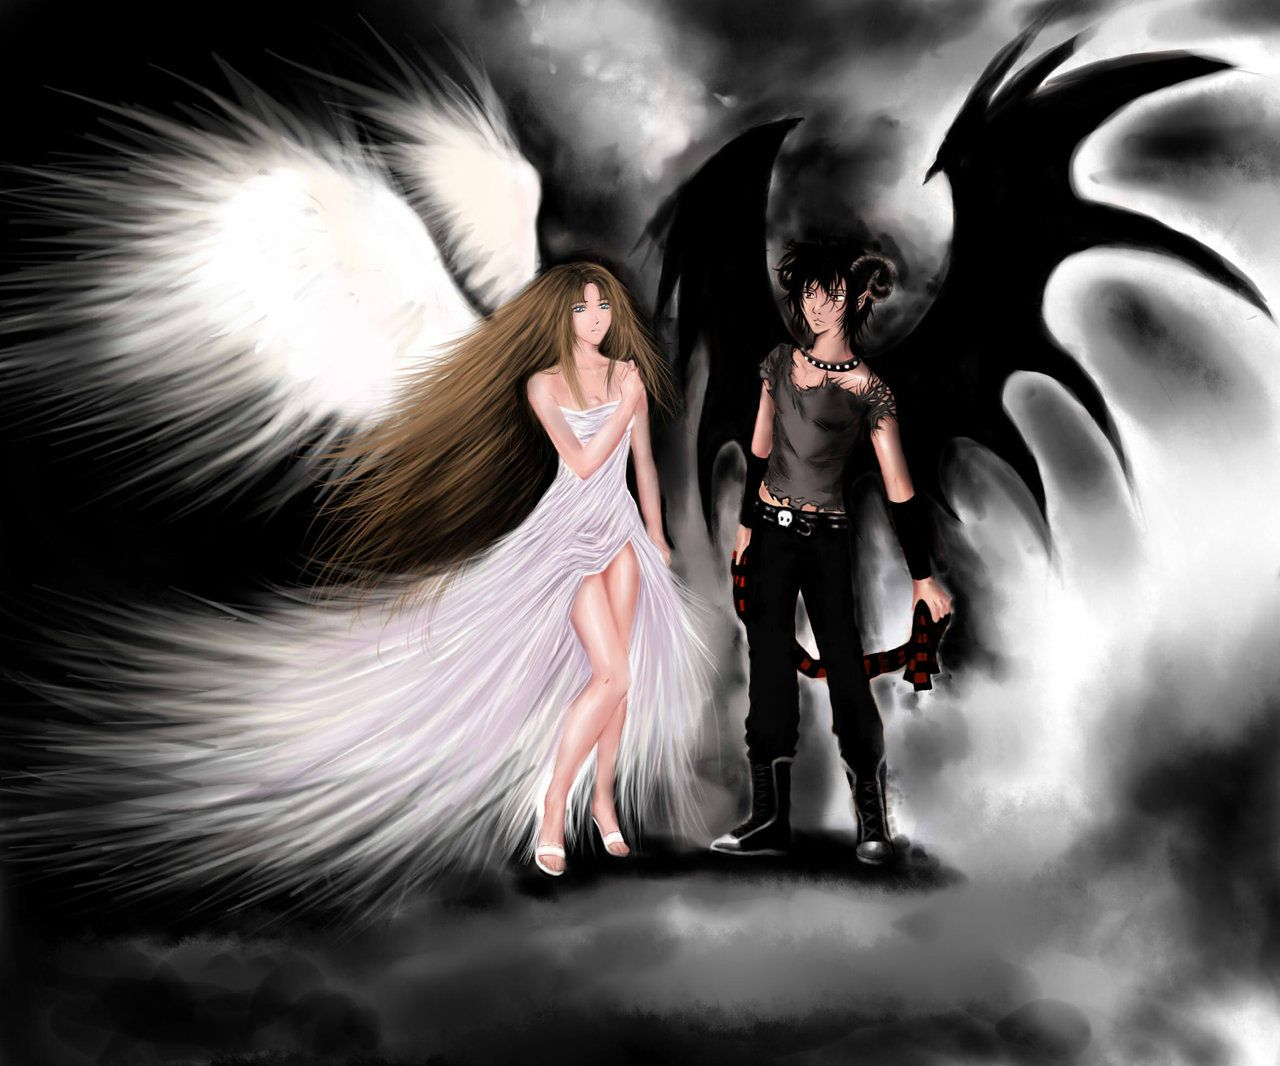 Angel And Demon By Theliazein On Deviantart Angel Wallpaper Angels And Demons Demon